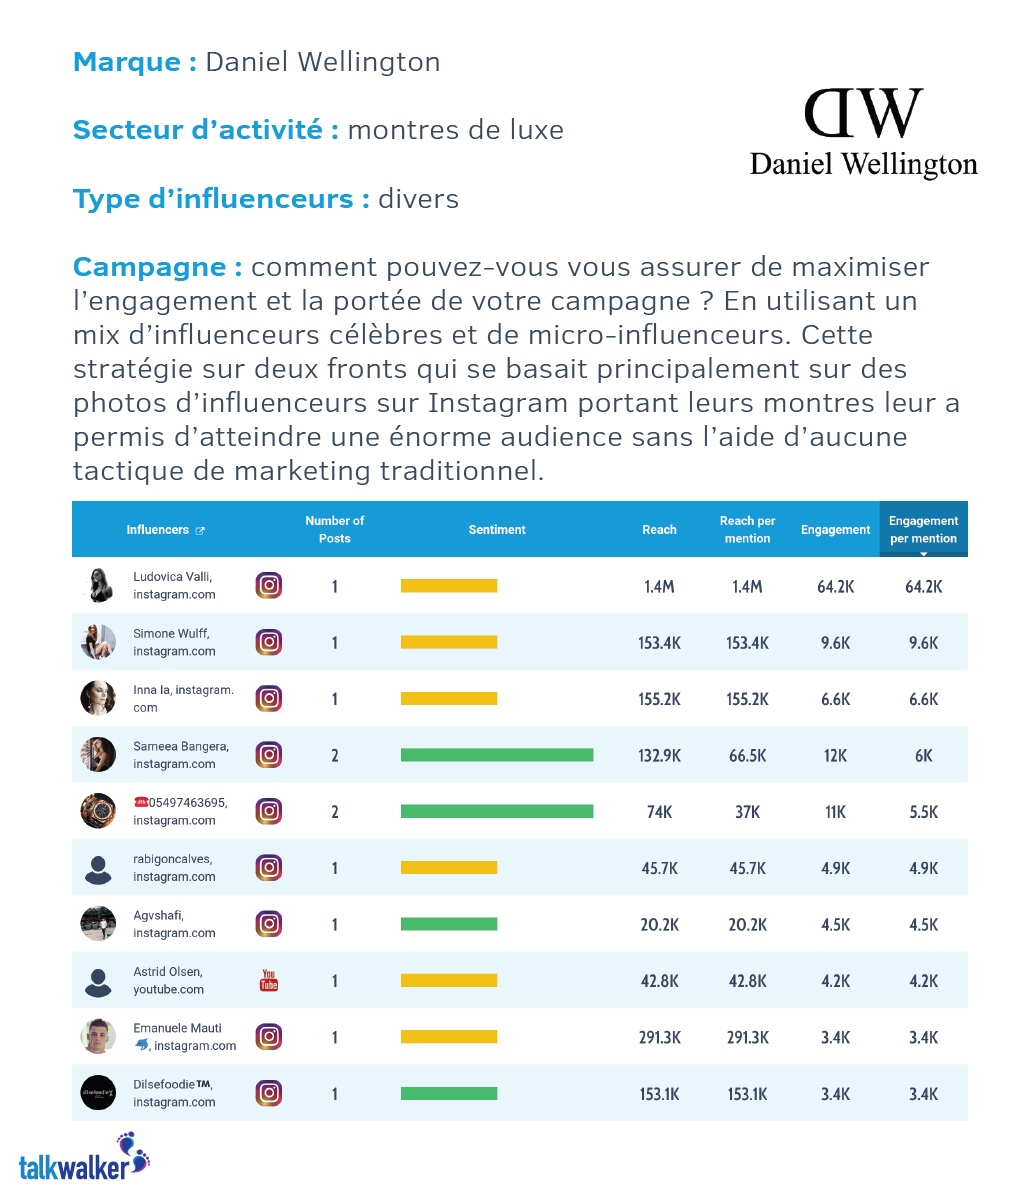 daniel wellington marketing d'influence